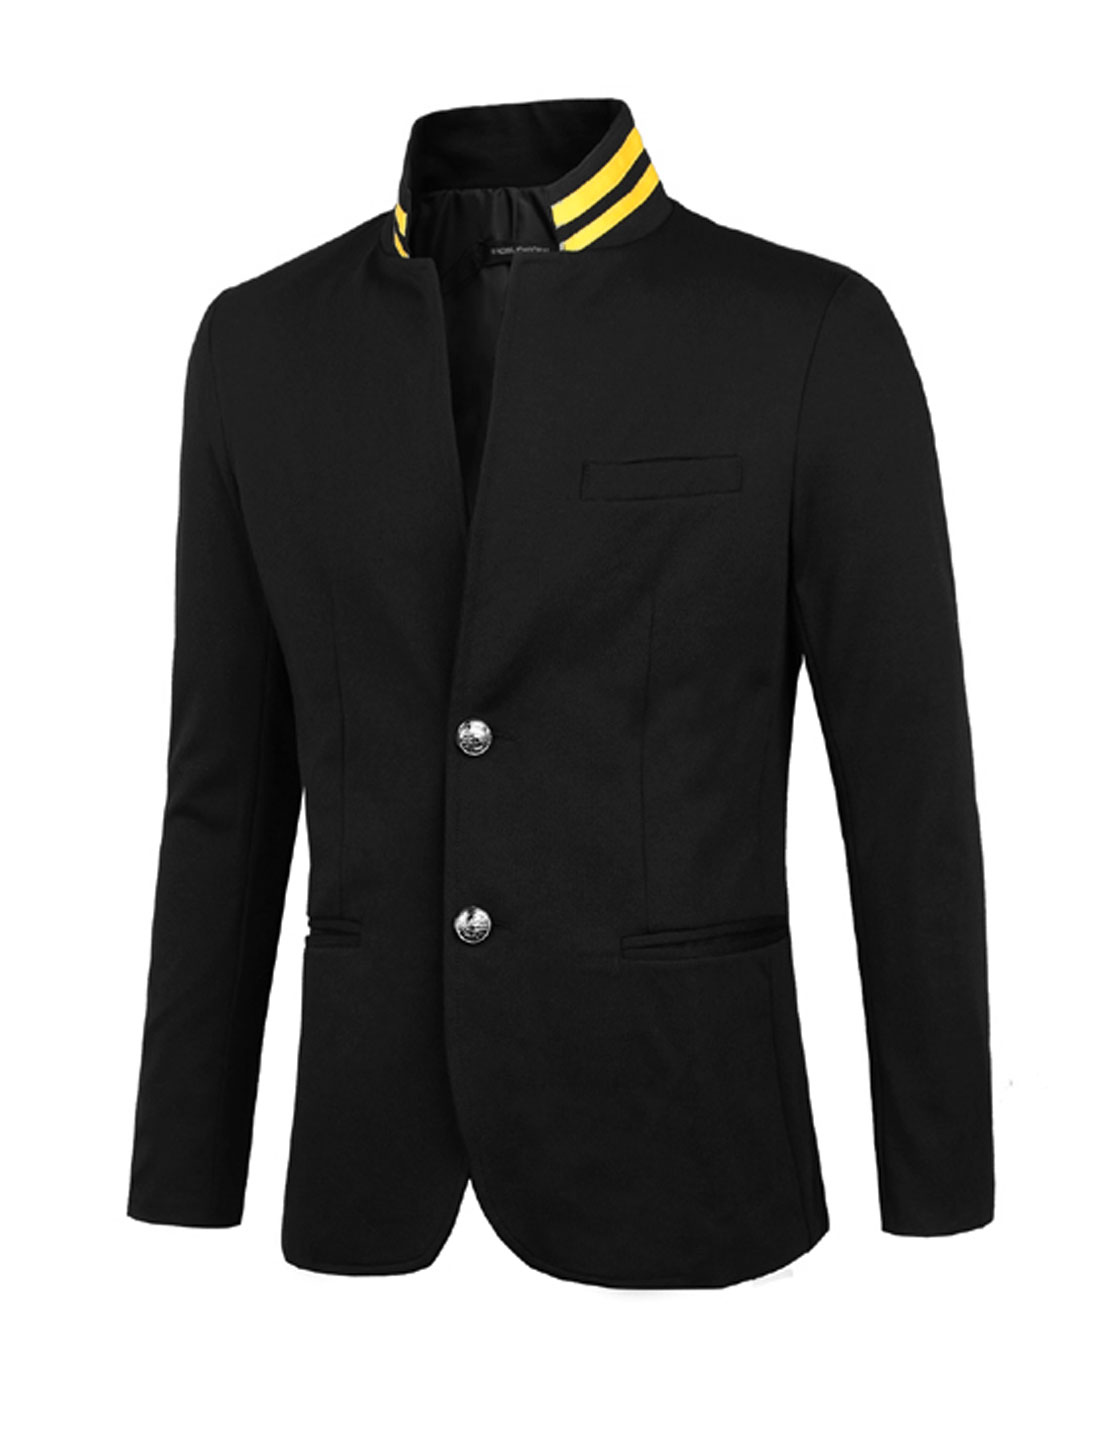 Men Convertible Collar Two Button Up Blazer Jacket Black S